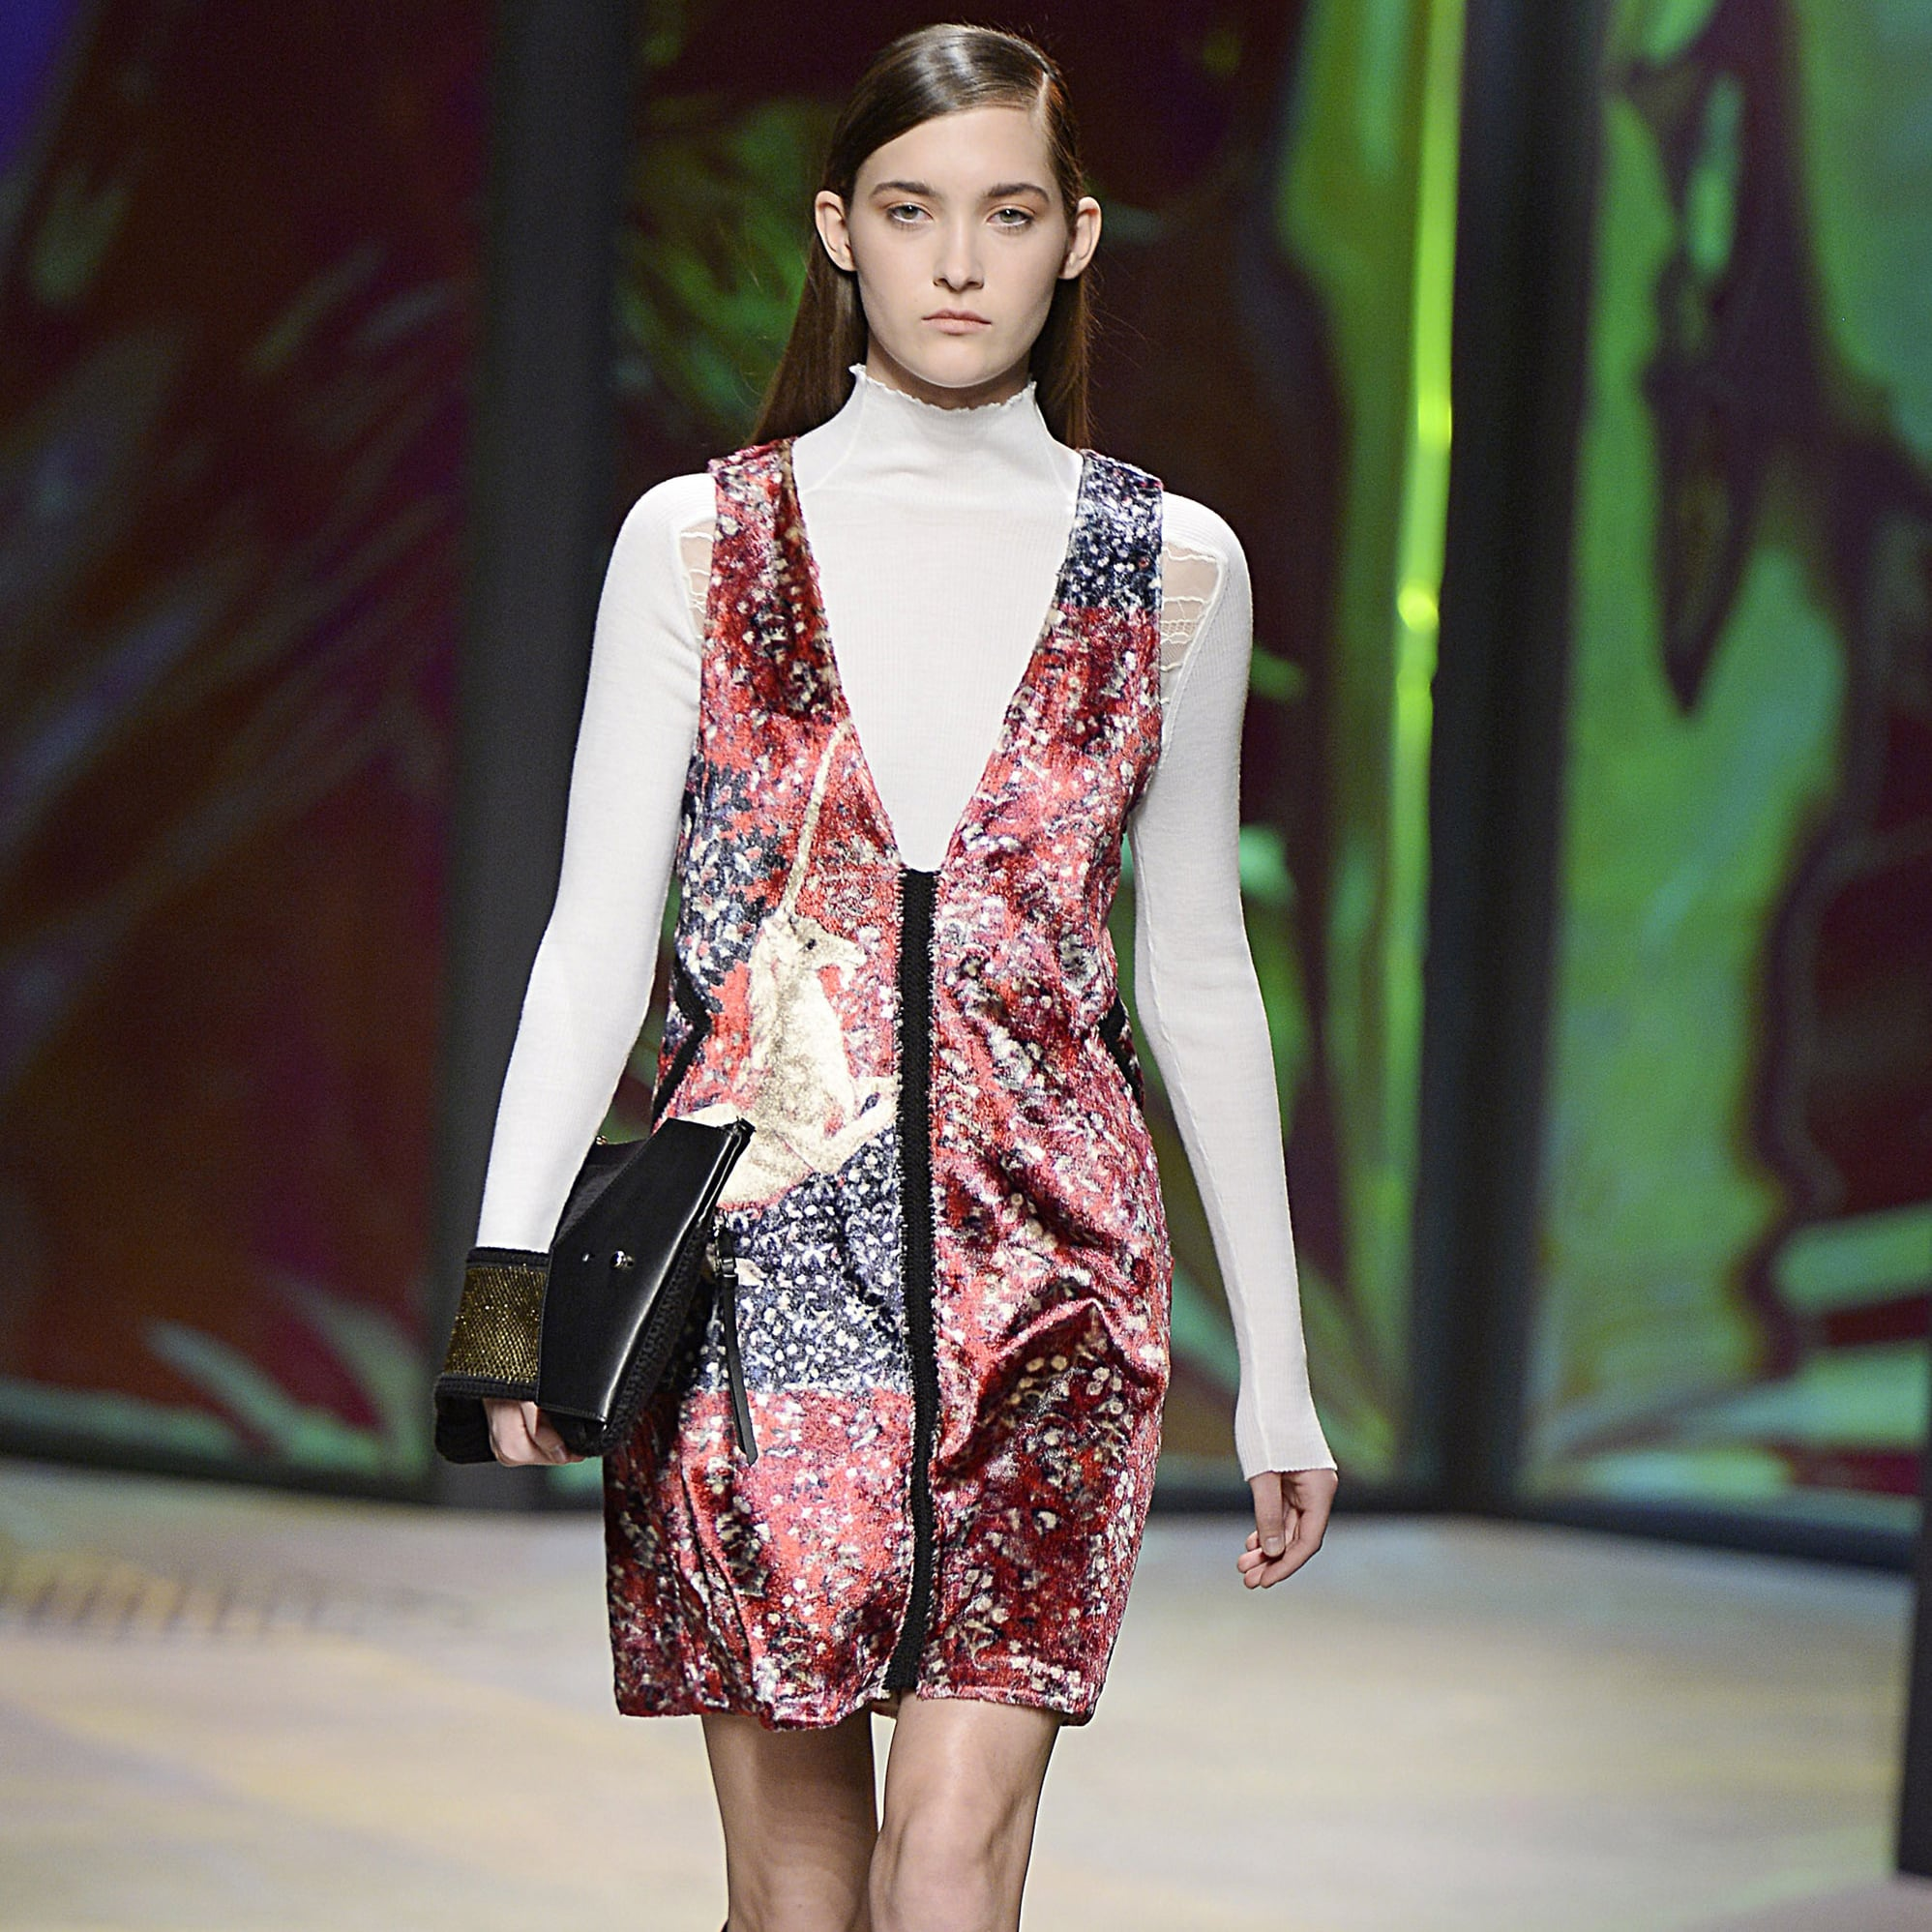 Collaborate to Thakoon with kohl best photo